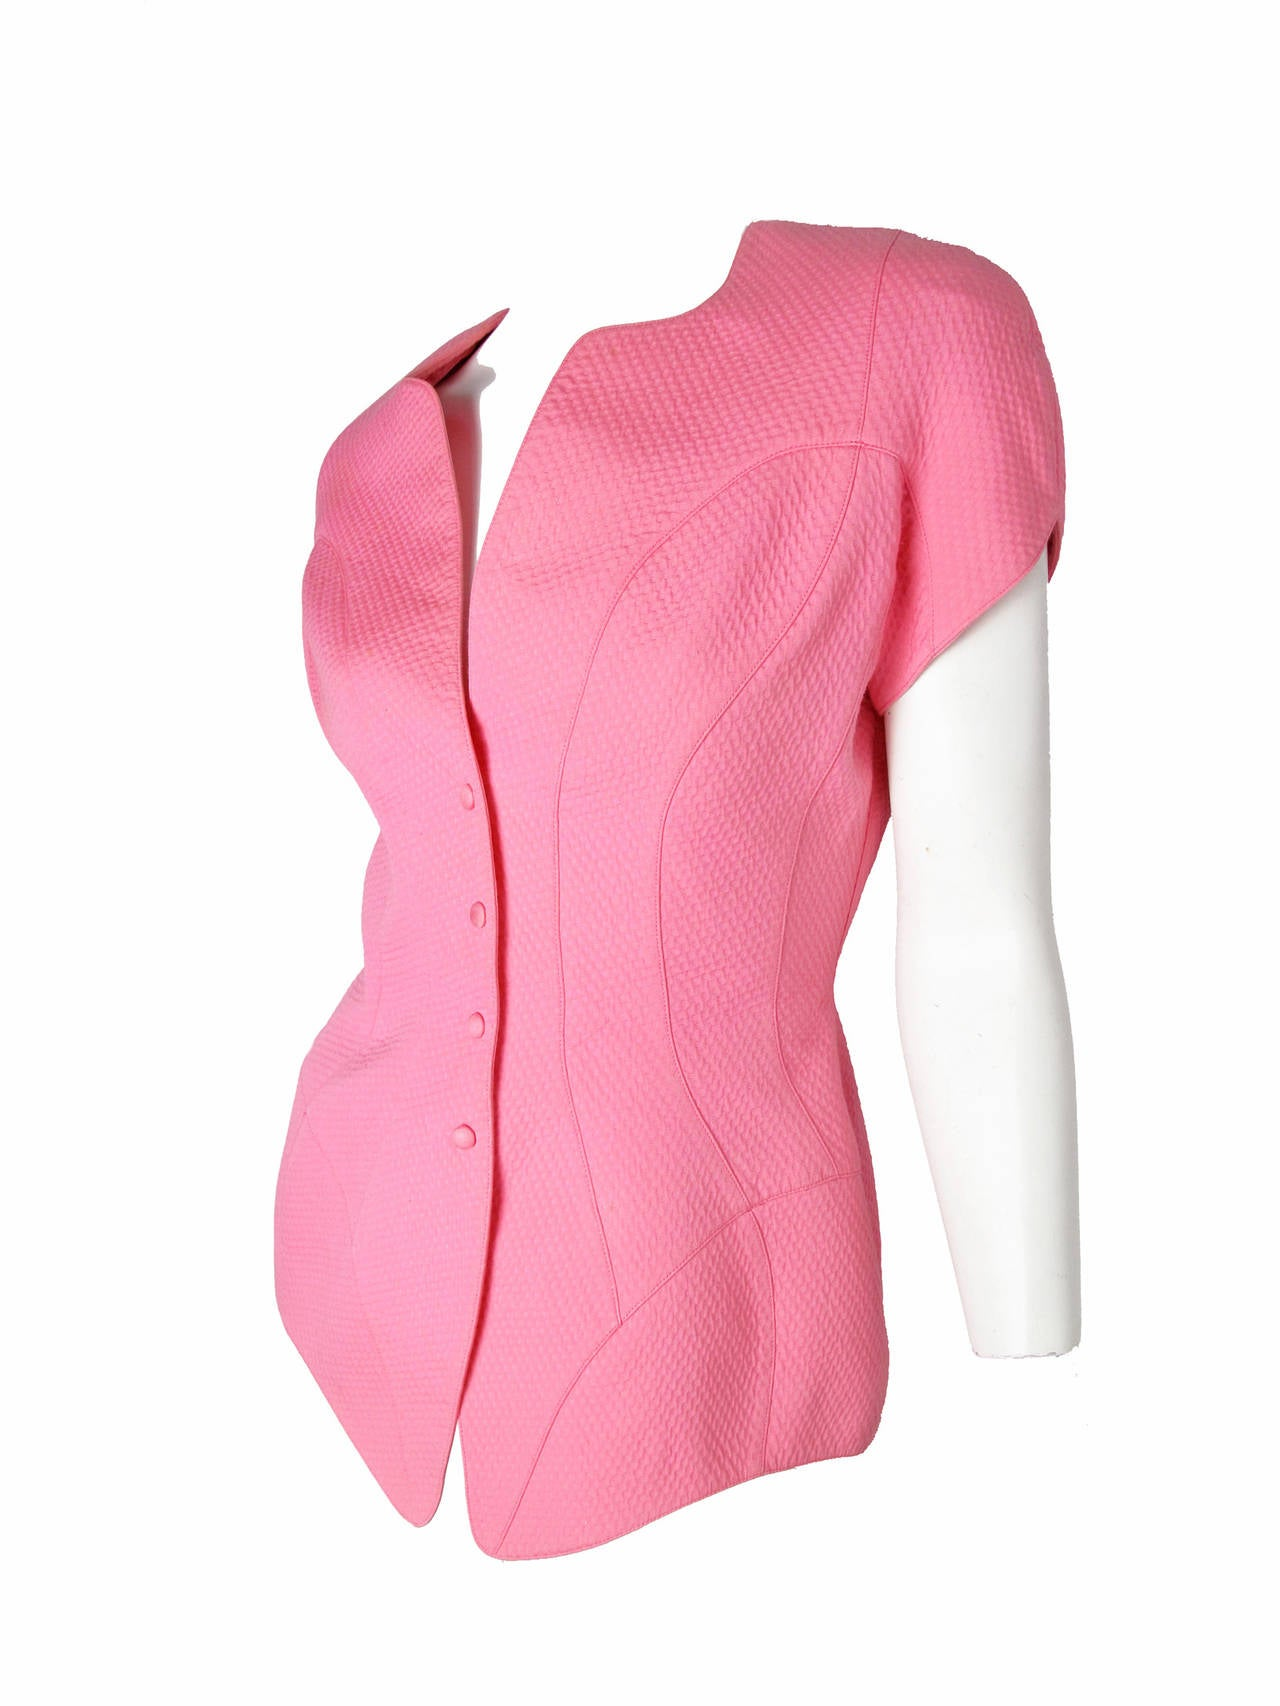 Thierry Mugler Pink and Black Suit, 1980s    In Good Condition For Sale In Austin, TX